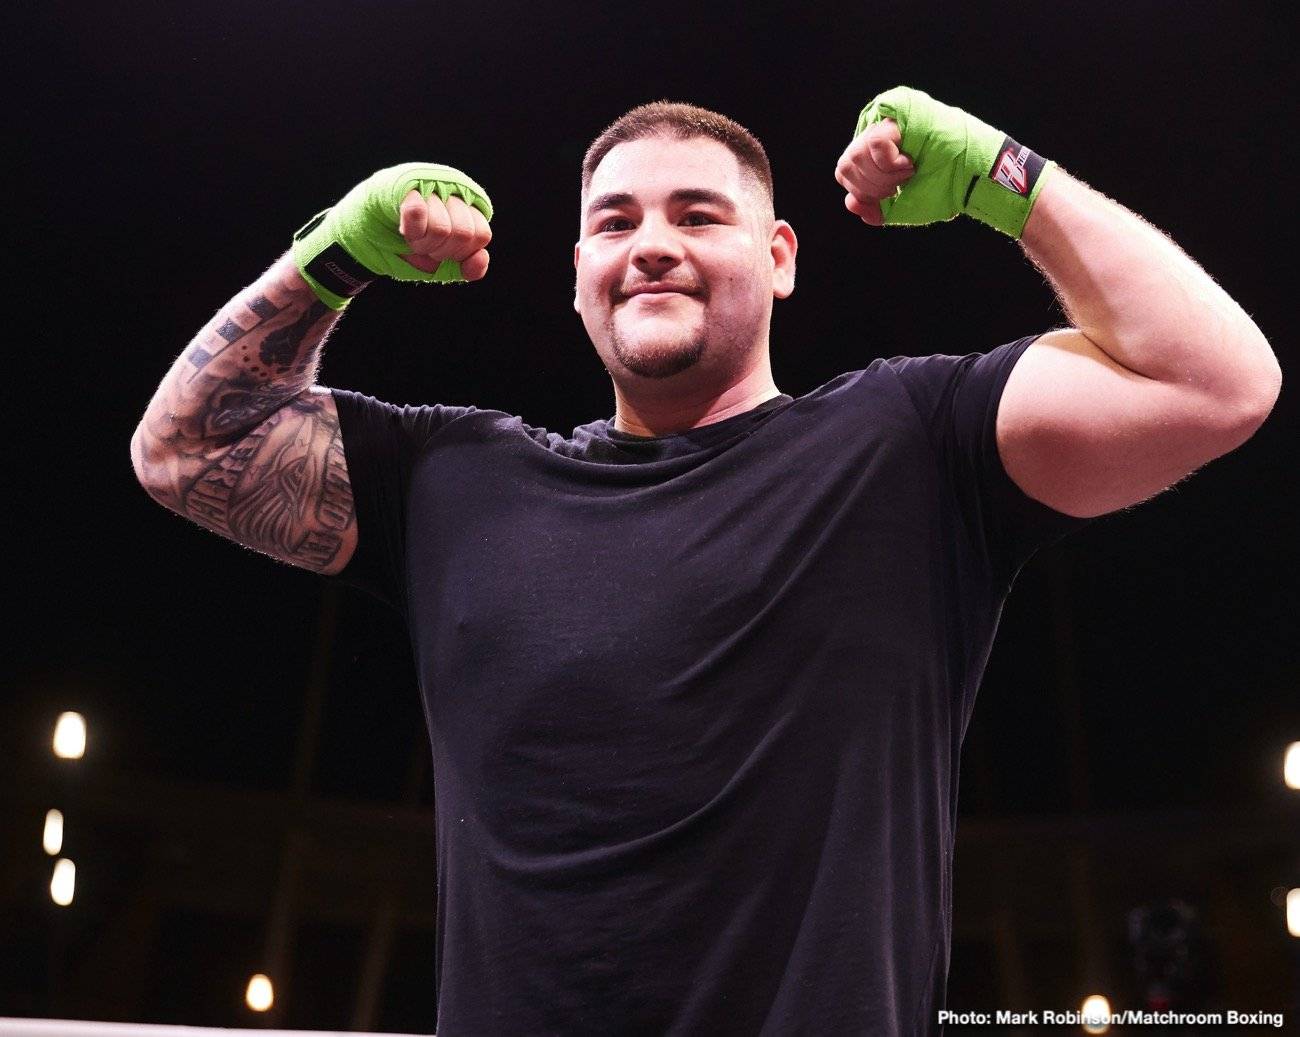 Andy Ruiz - THE STORY OF THE UNDERDOG FIGHTER WHO MADE HISTORY BY BEATING ANTHONY JOSHUA TO BECOME THE FIRST MEXICAN HEAVYWEIGHT WORLD CHAMPION